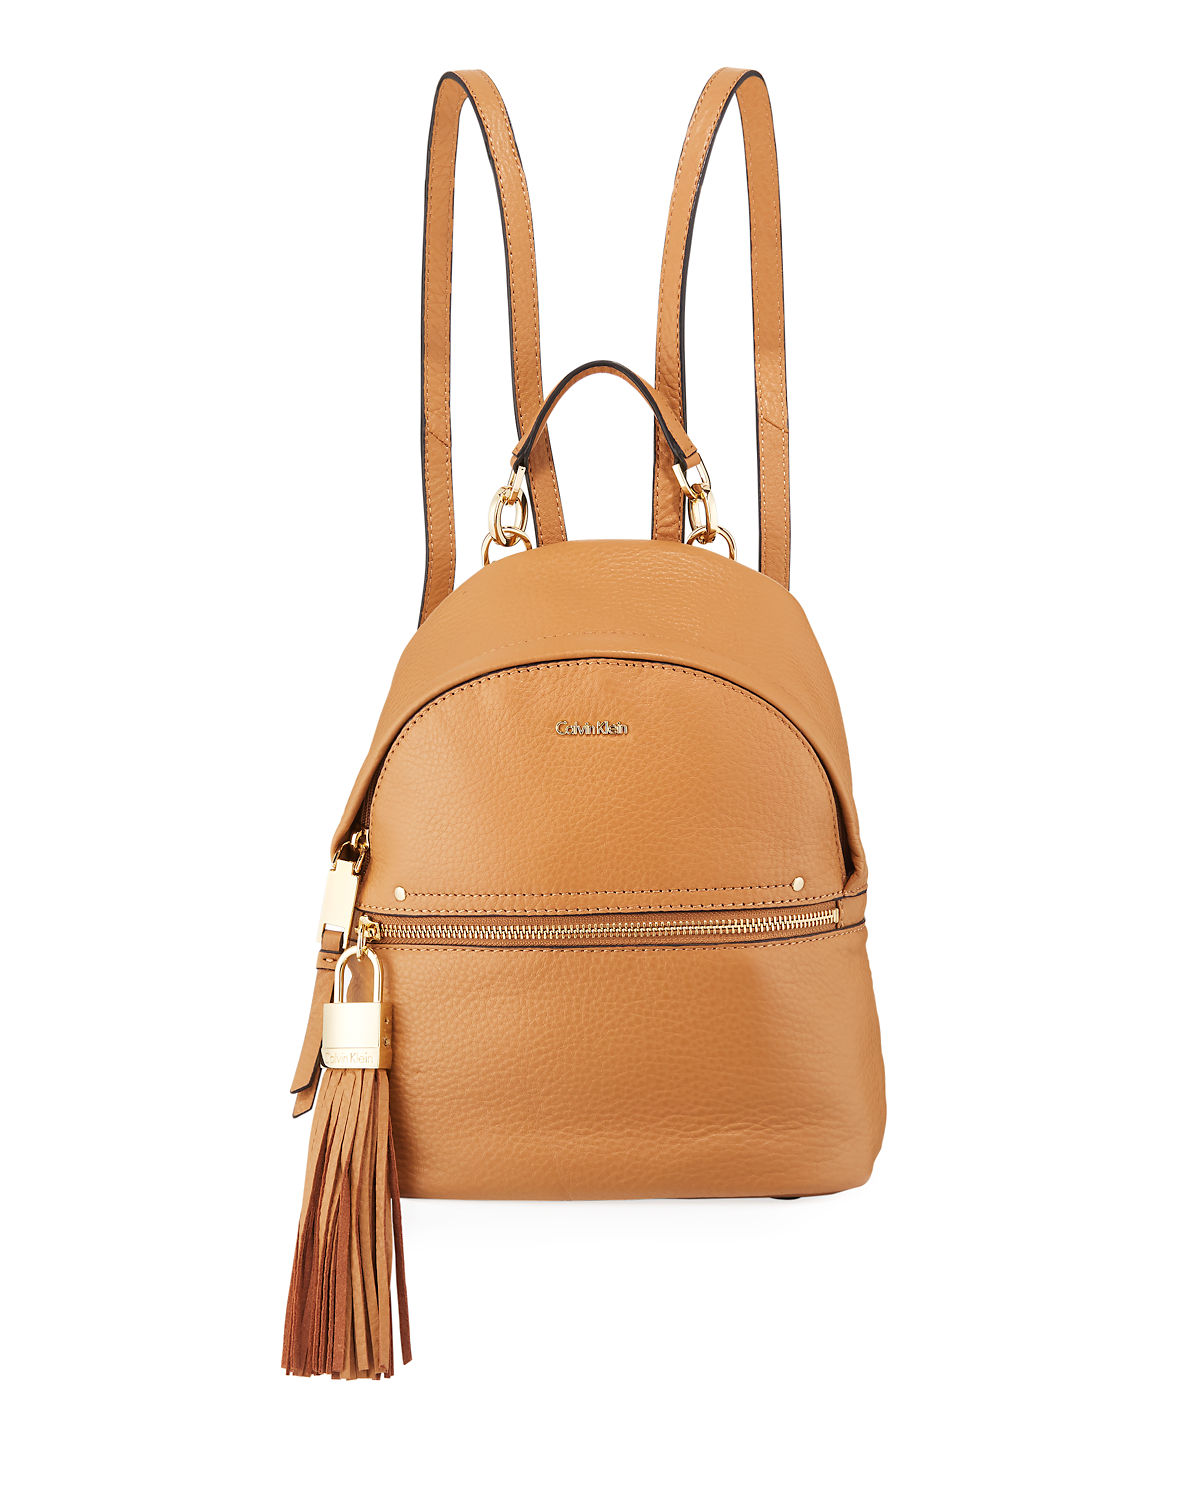 Lynn Pebble Leather Backpack with Tassel